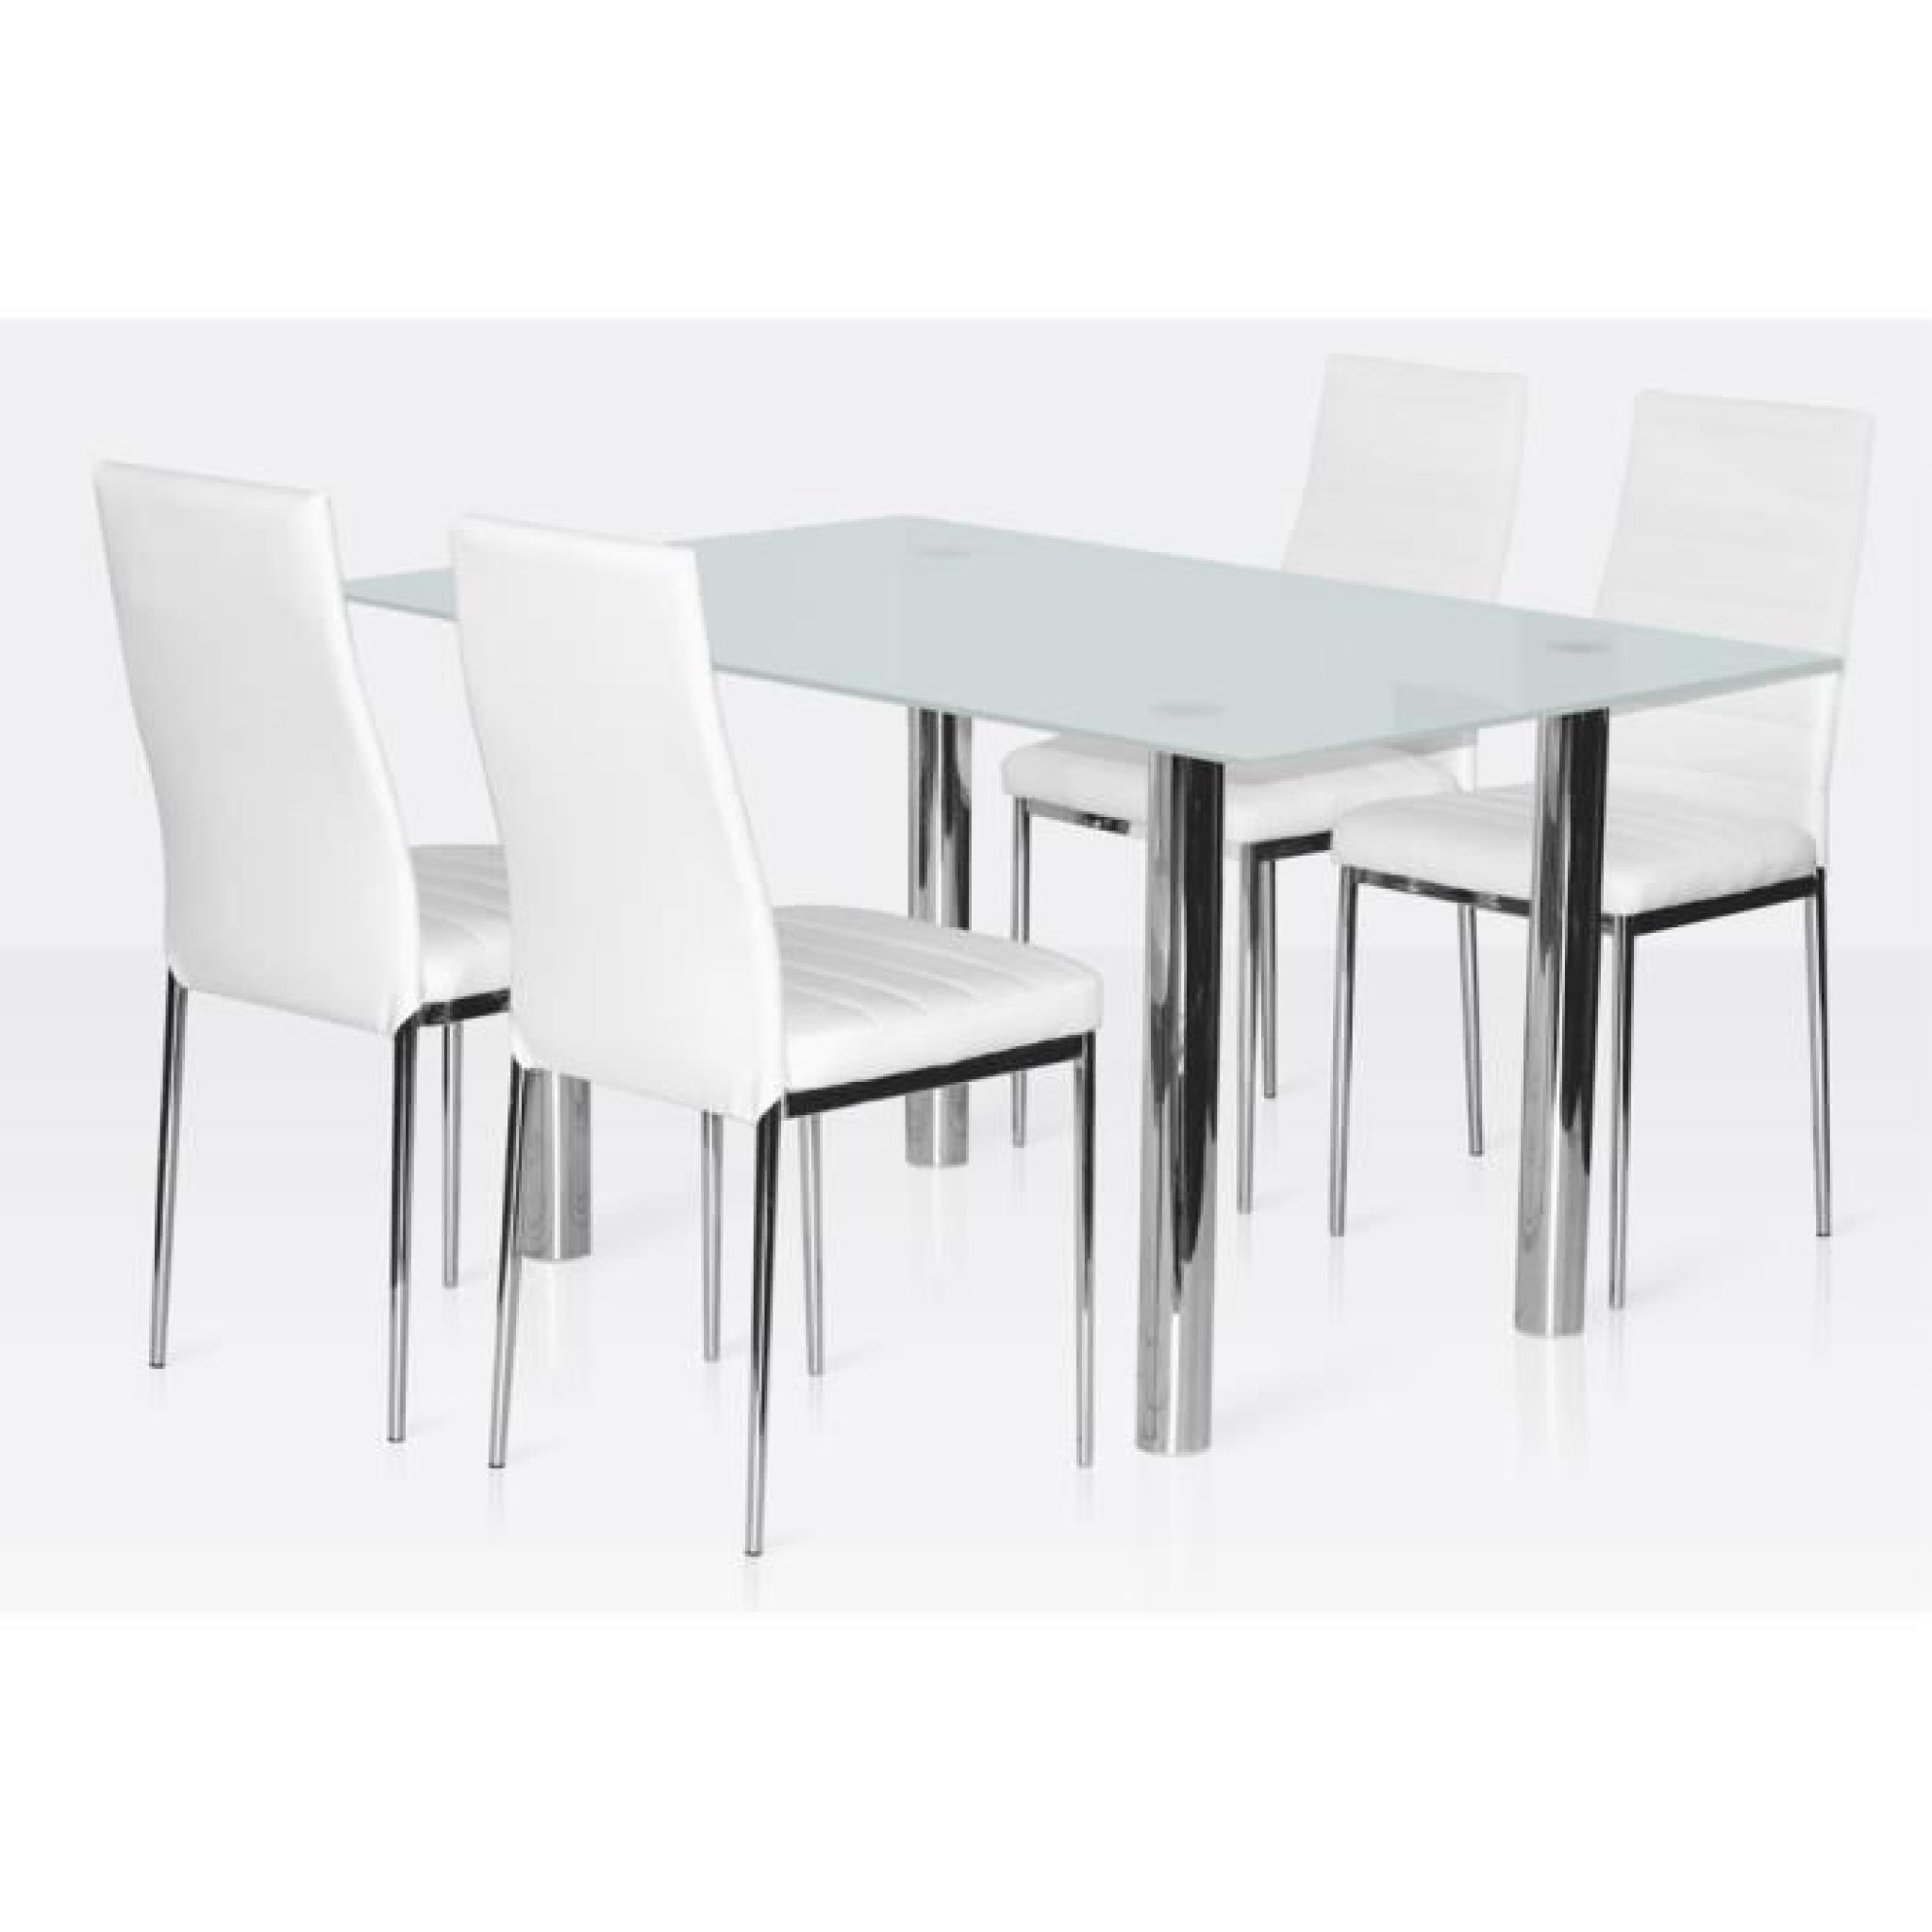 90 table a manger en verre design pas cher table en for Salle a manger en verre design